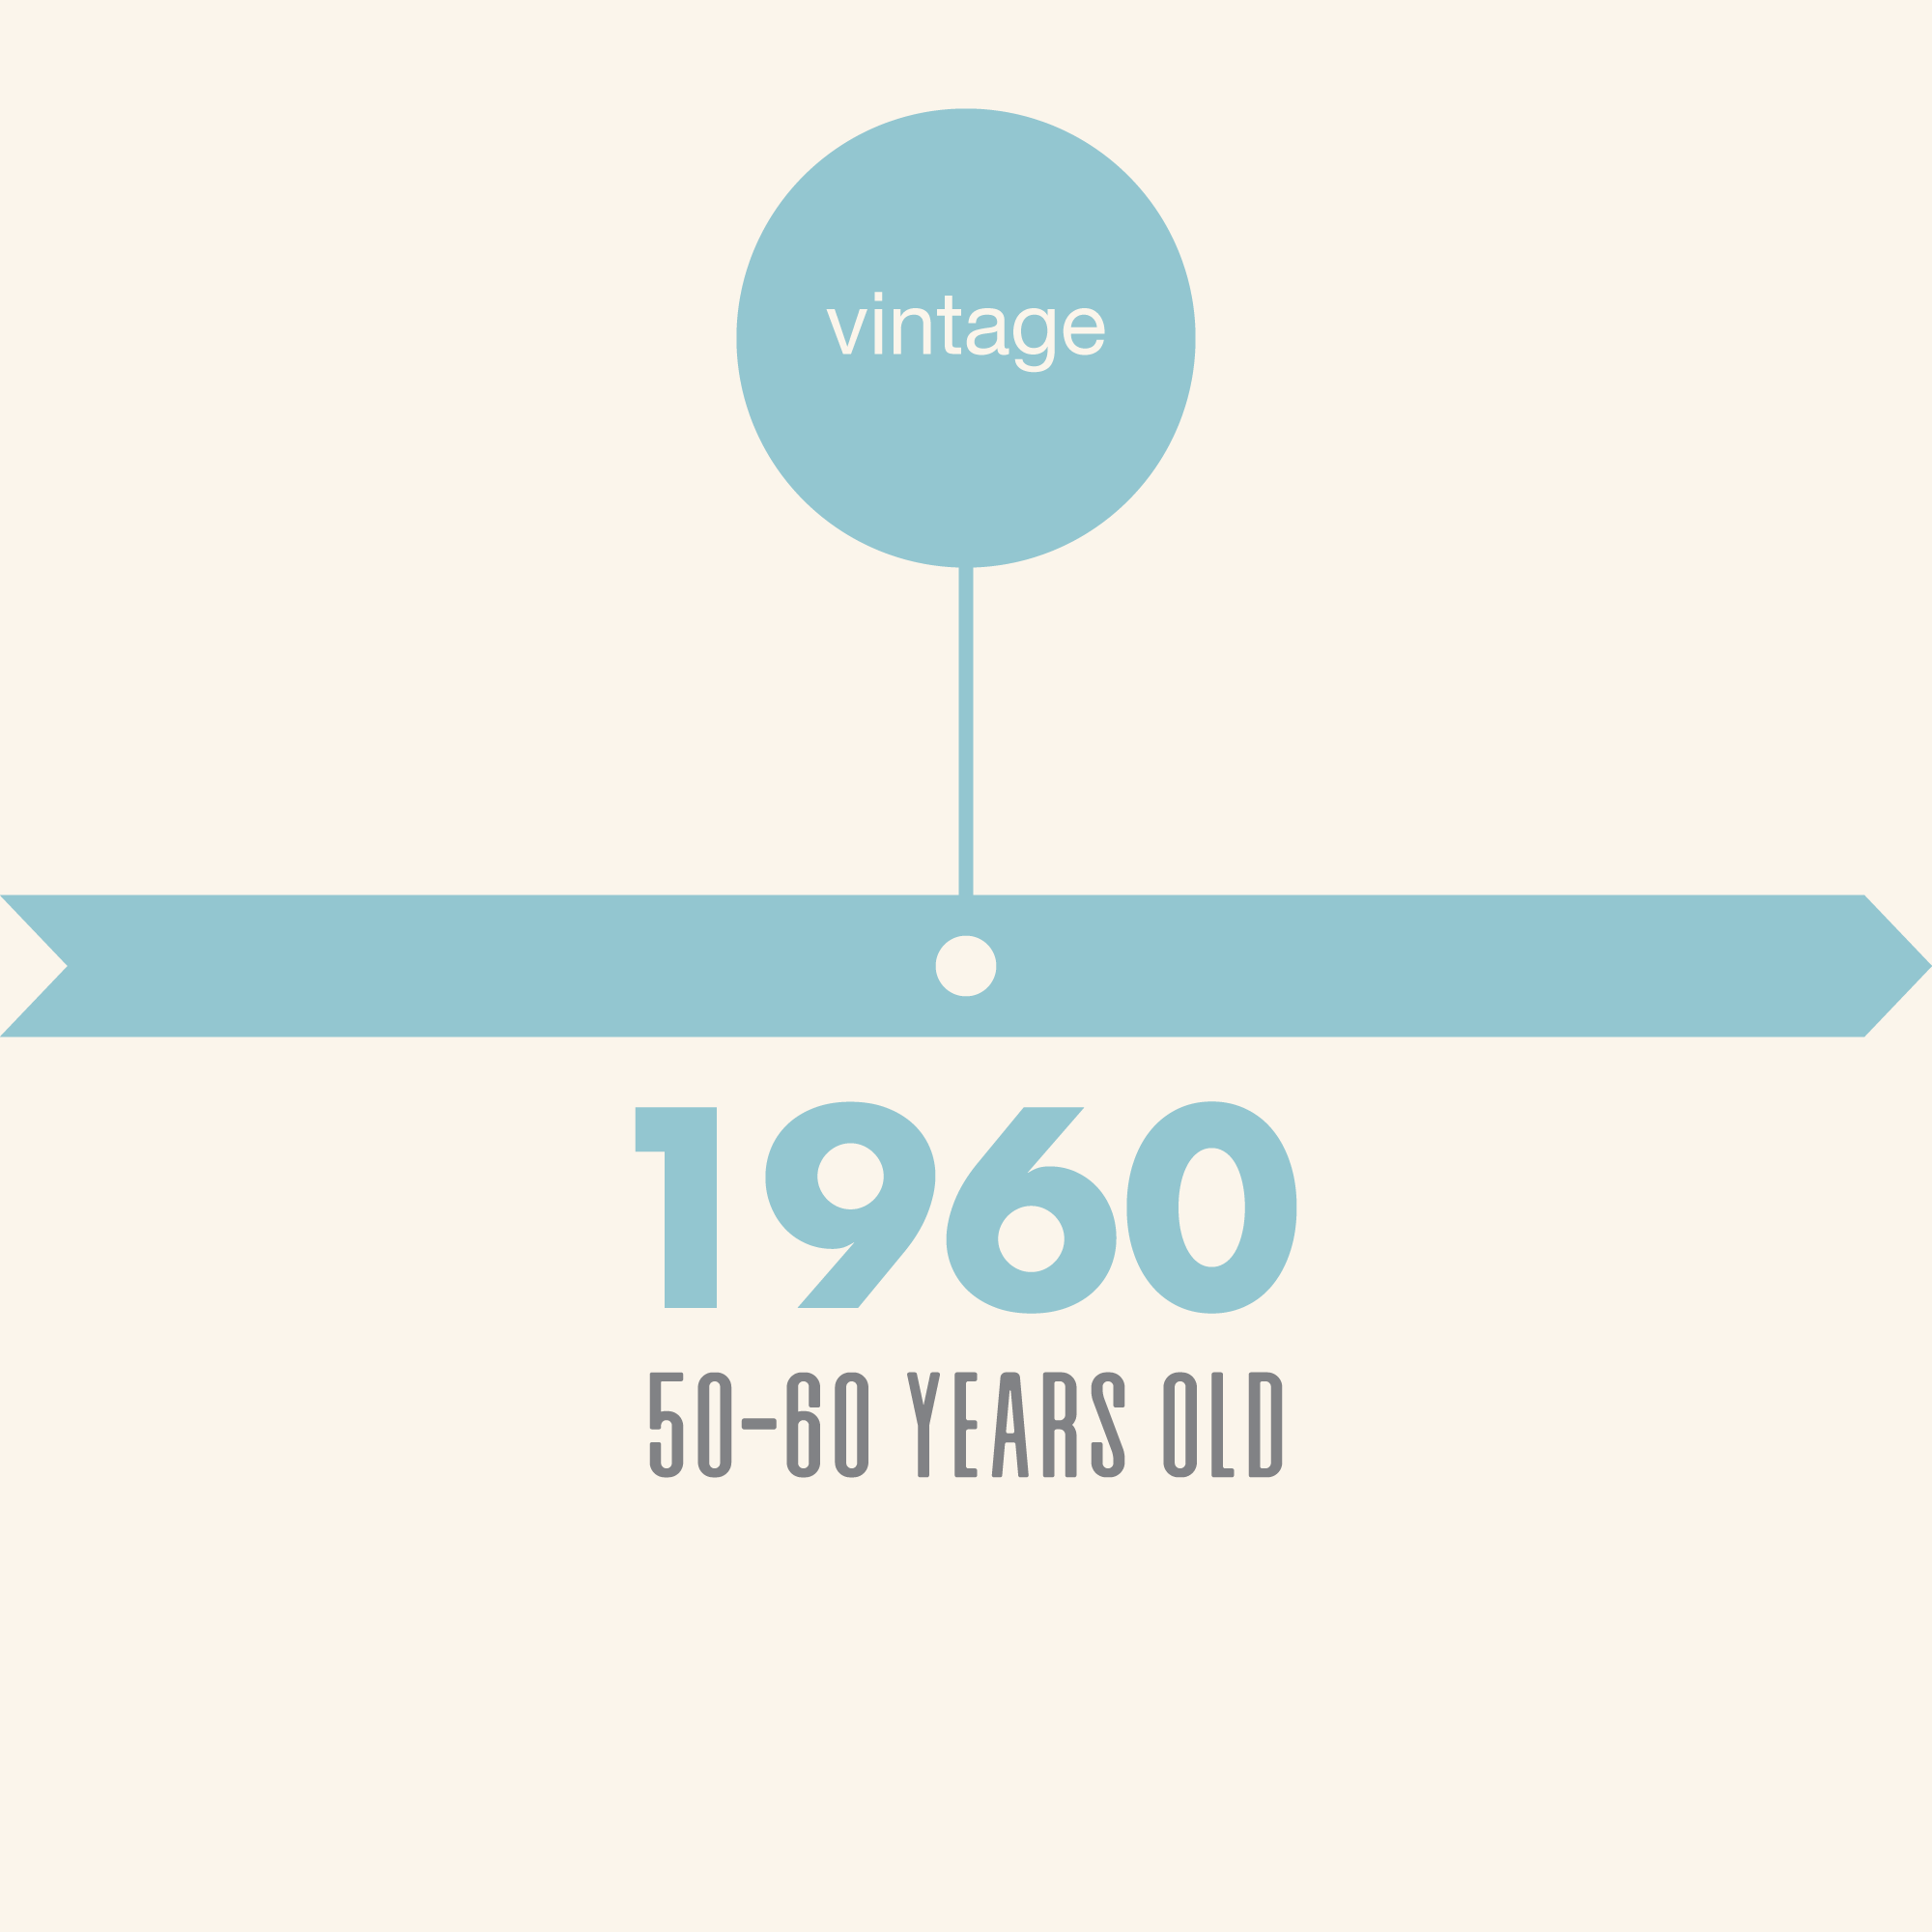 product-attribute-1960